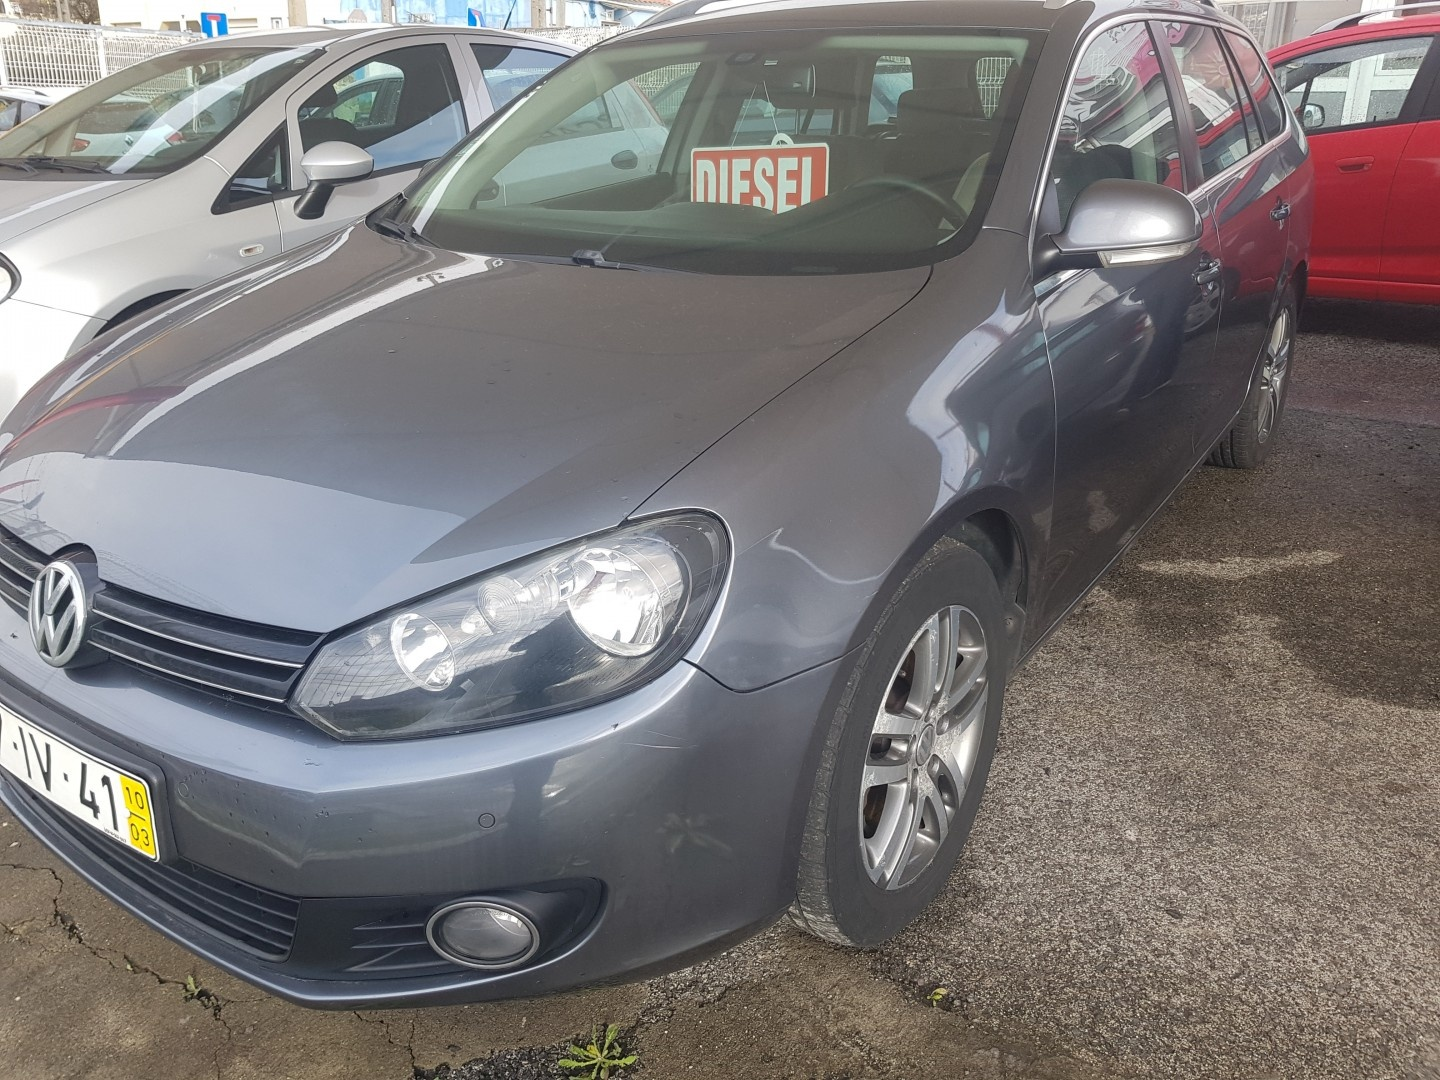 Vw Golf Variant 1.6tdi